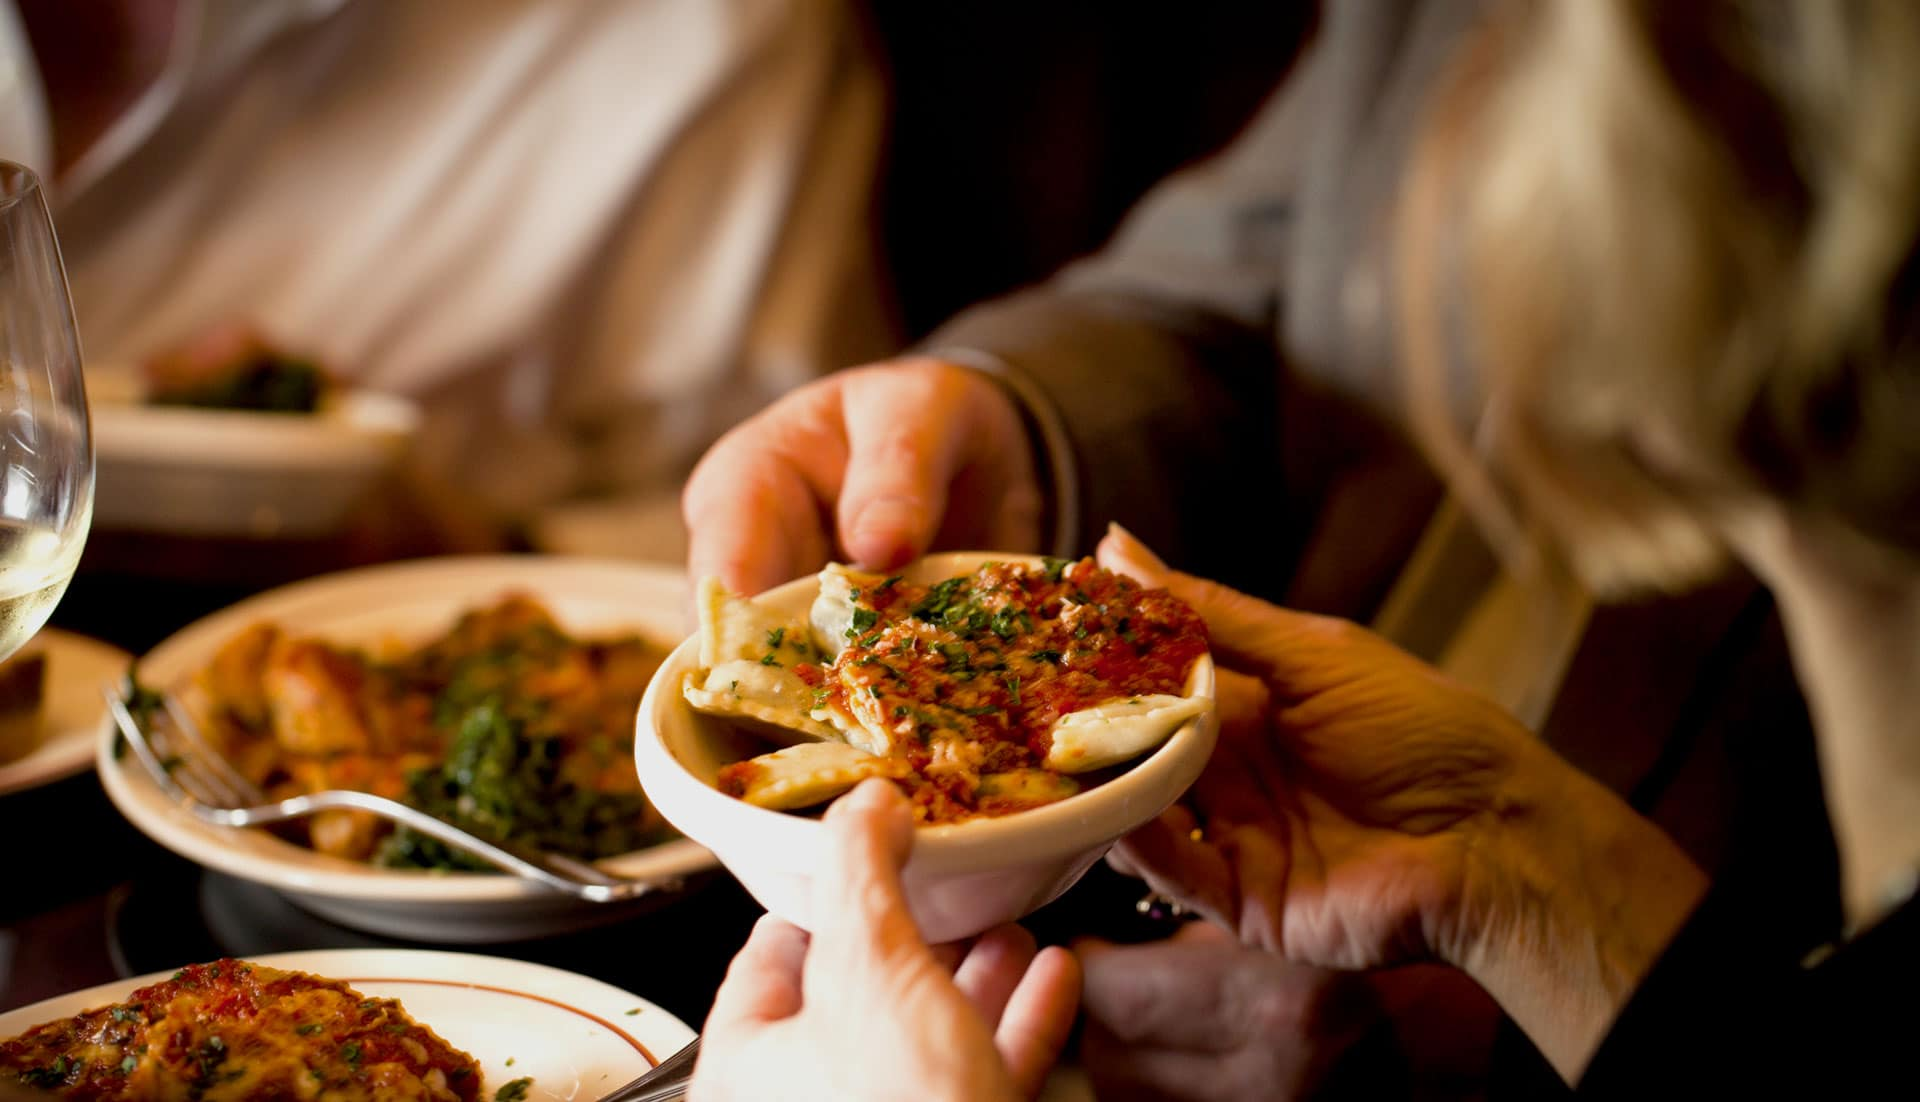 Come see the newly renovated Original Joe's Westlake – one of the best restaurants in Daly City